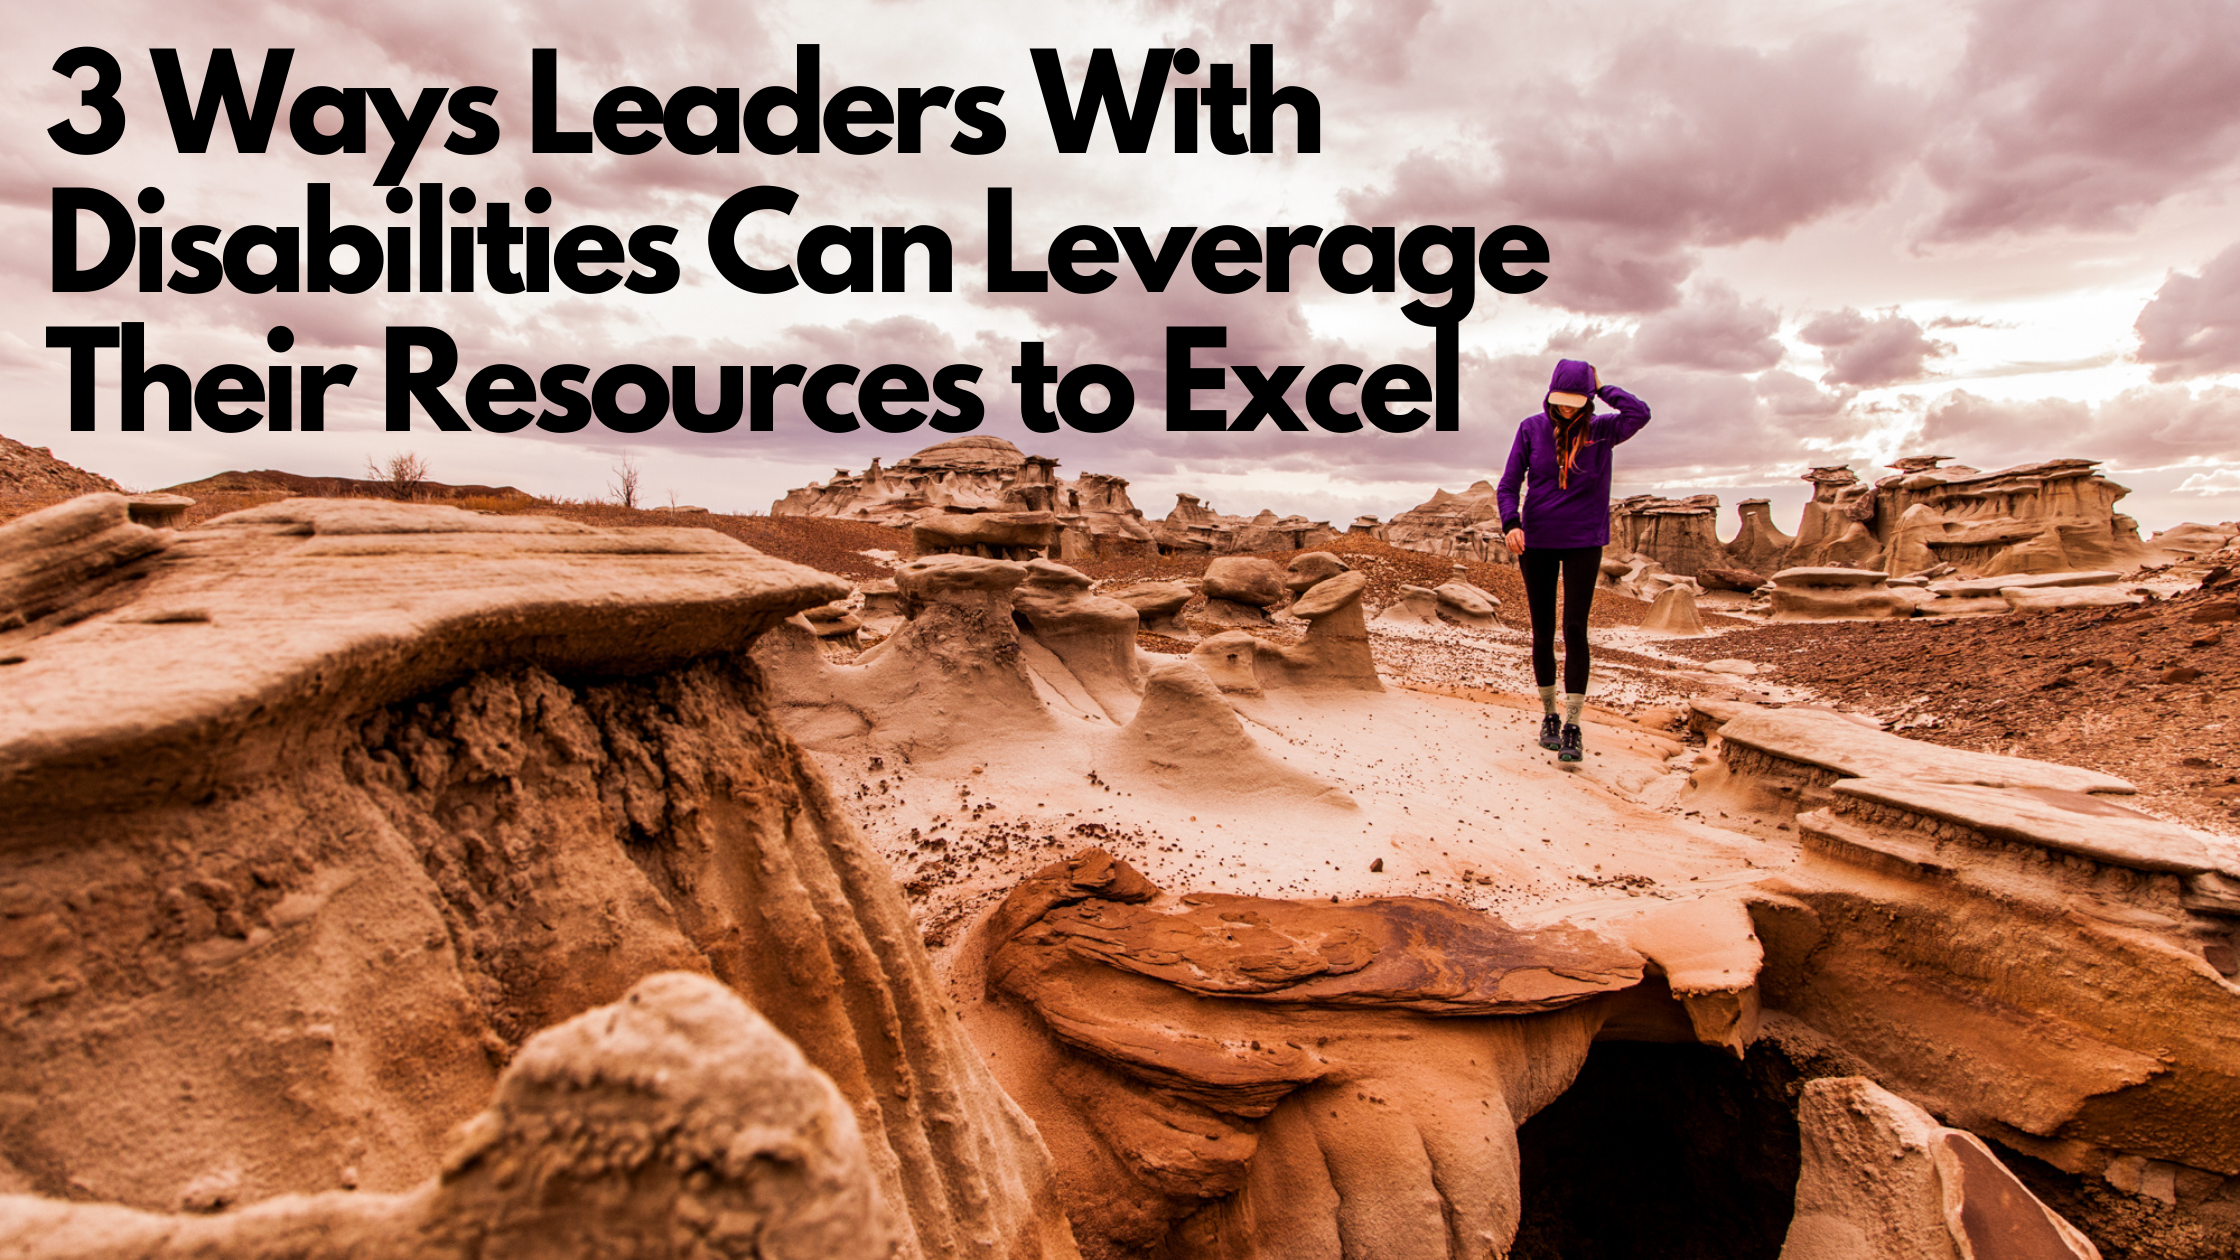 3 Ways Leaders with Disabilities can Leverage their Resources to Excel